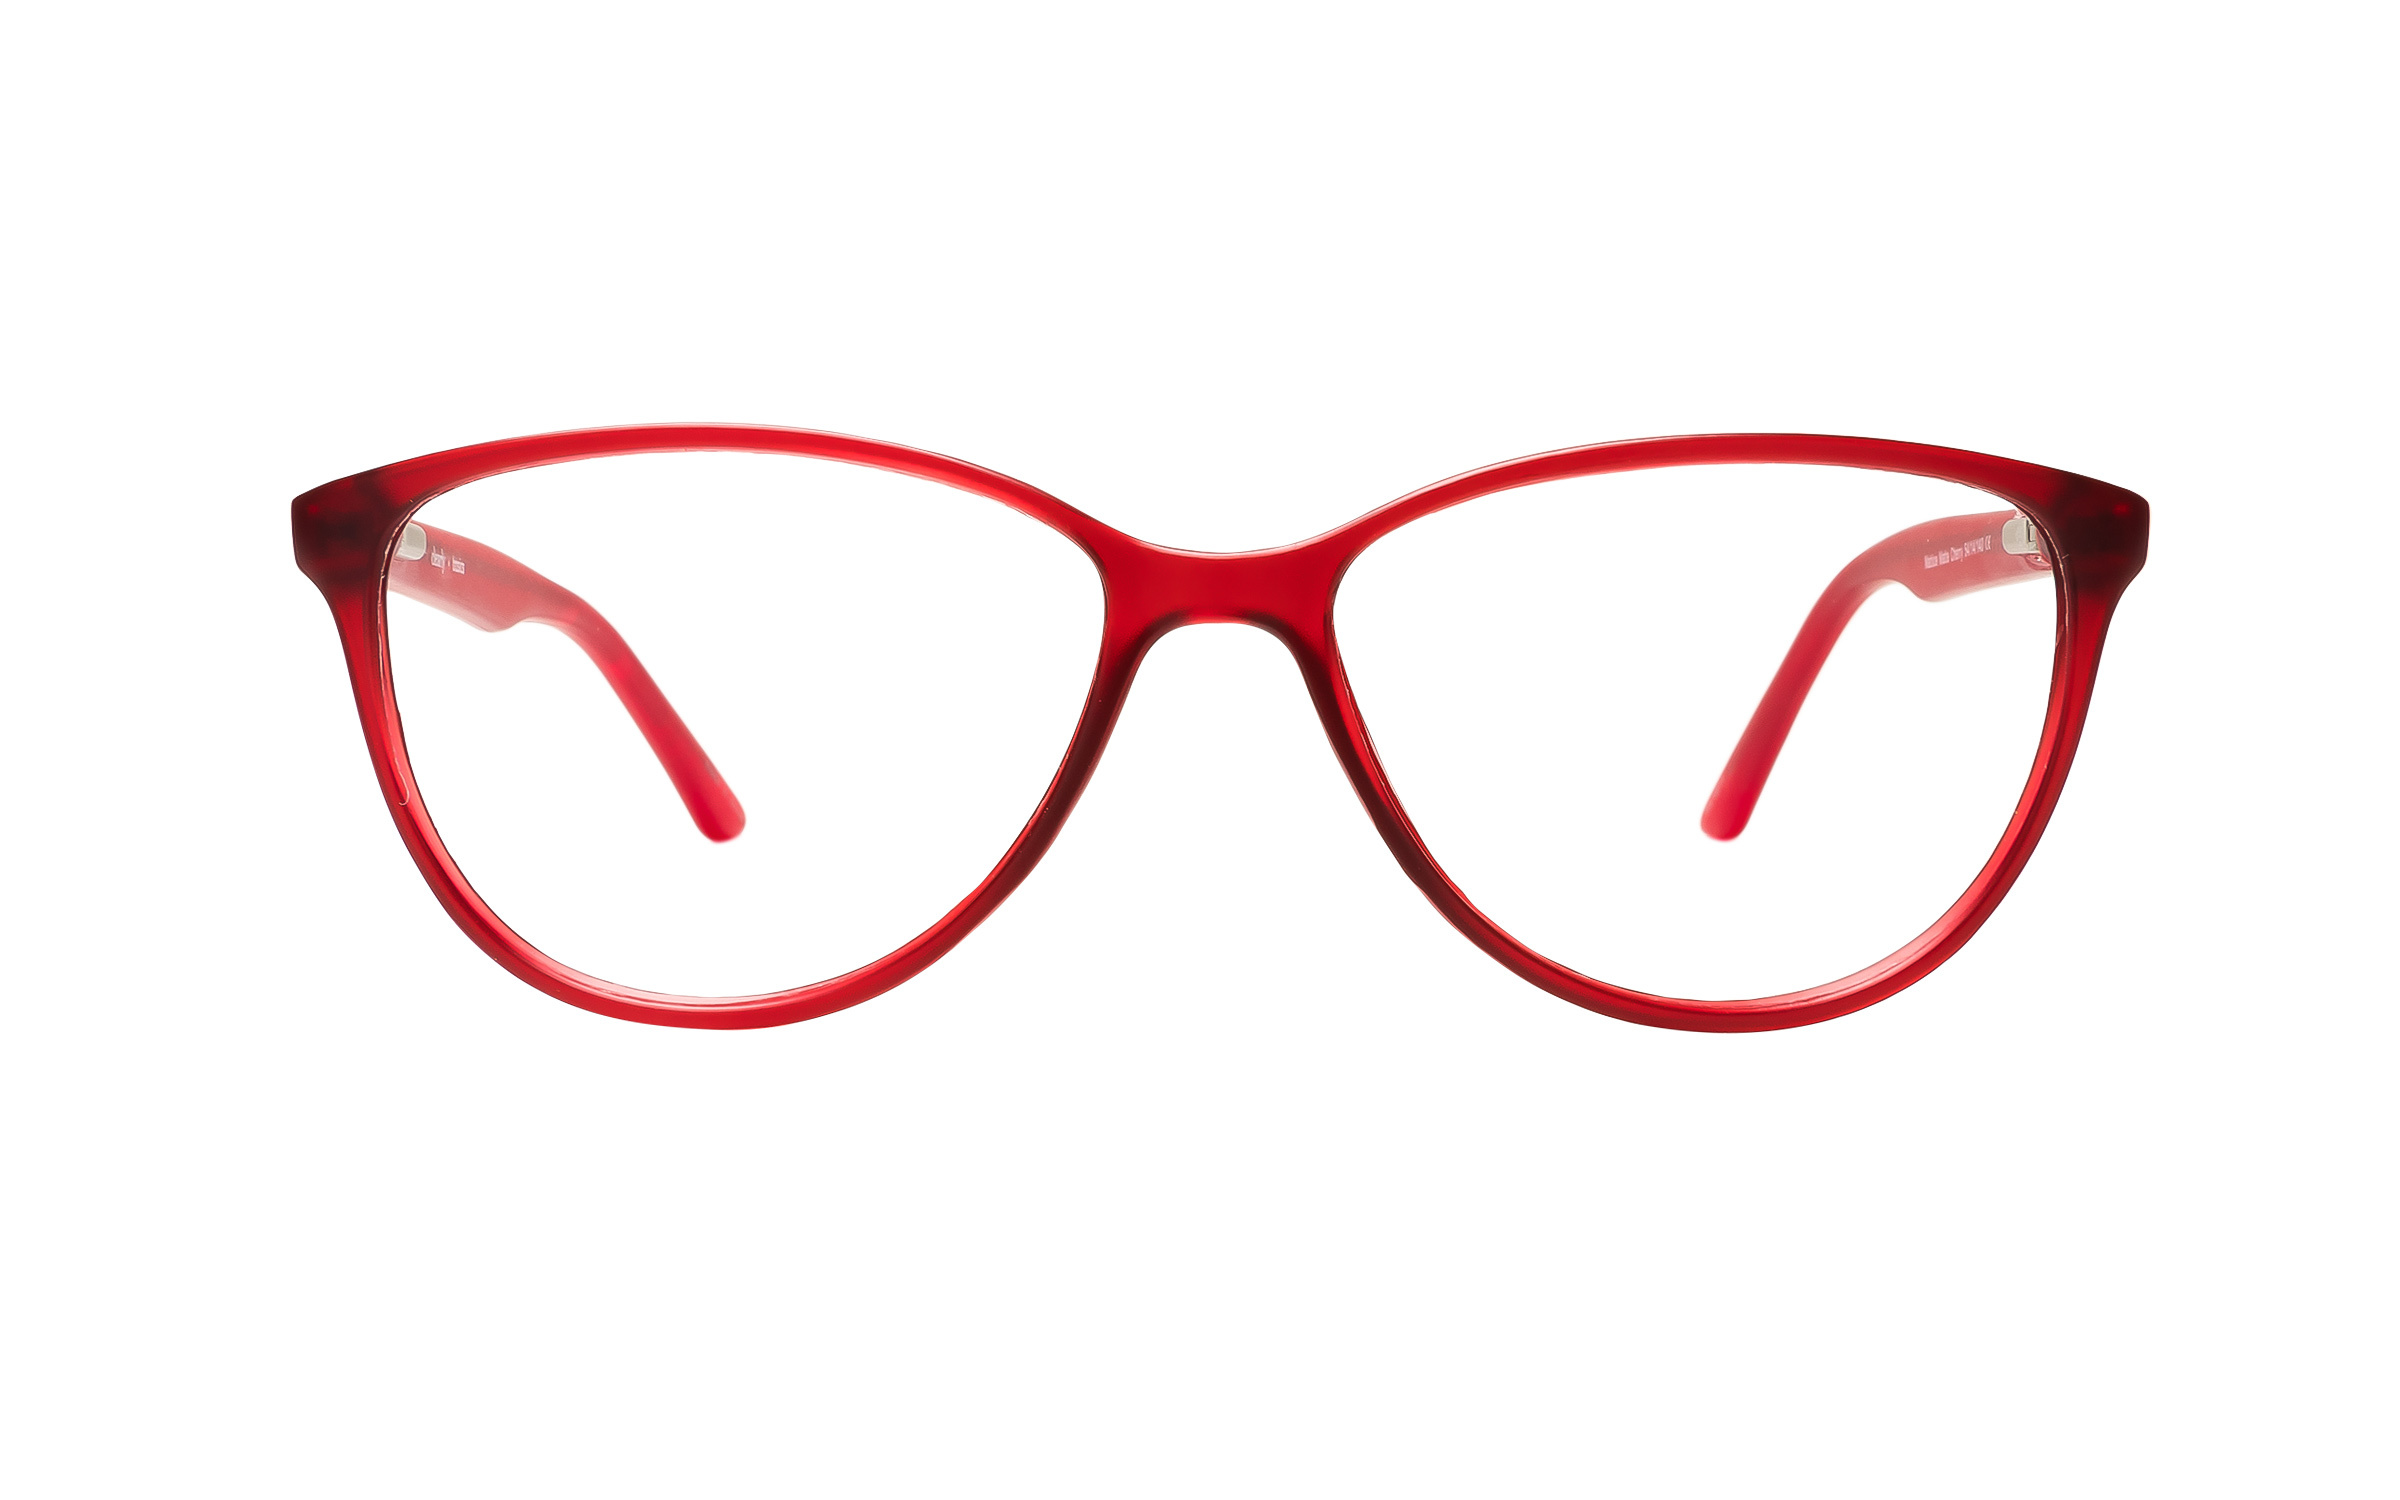 Clearly Basics Mattice (54) Eyeglasses and Frame in Matte Cherry Red | Plastic